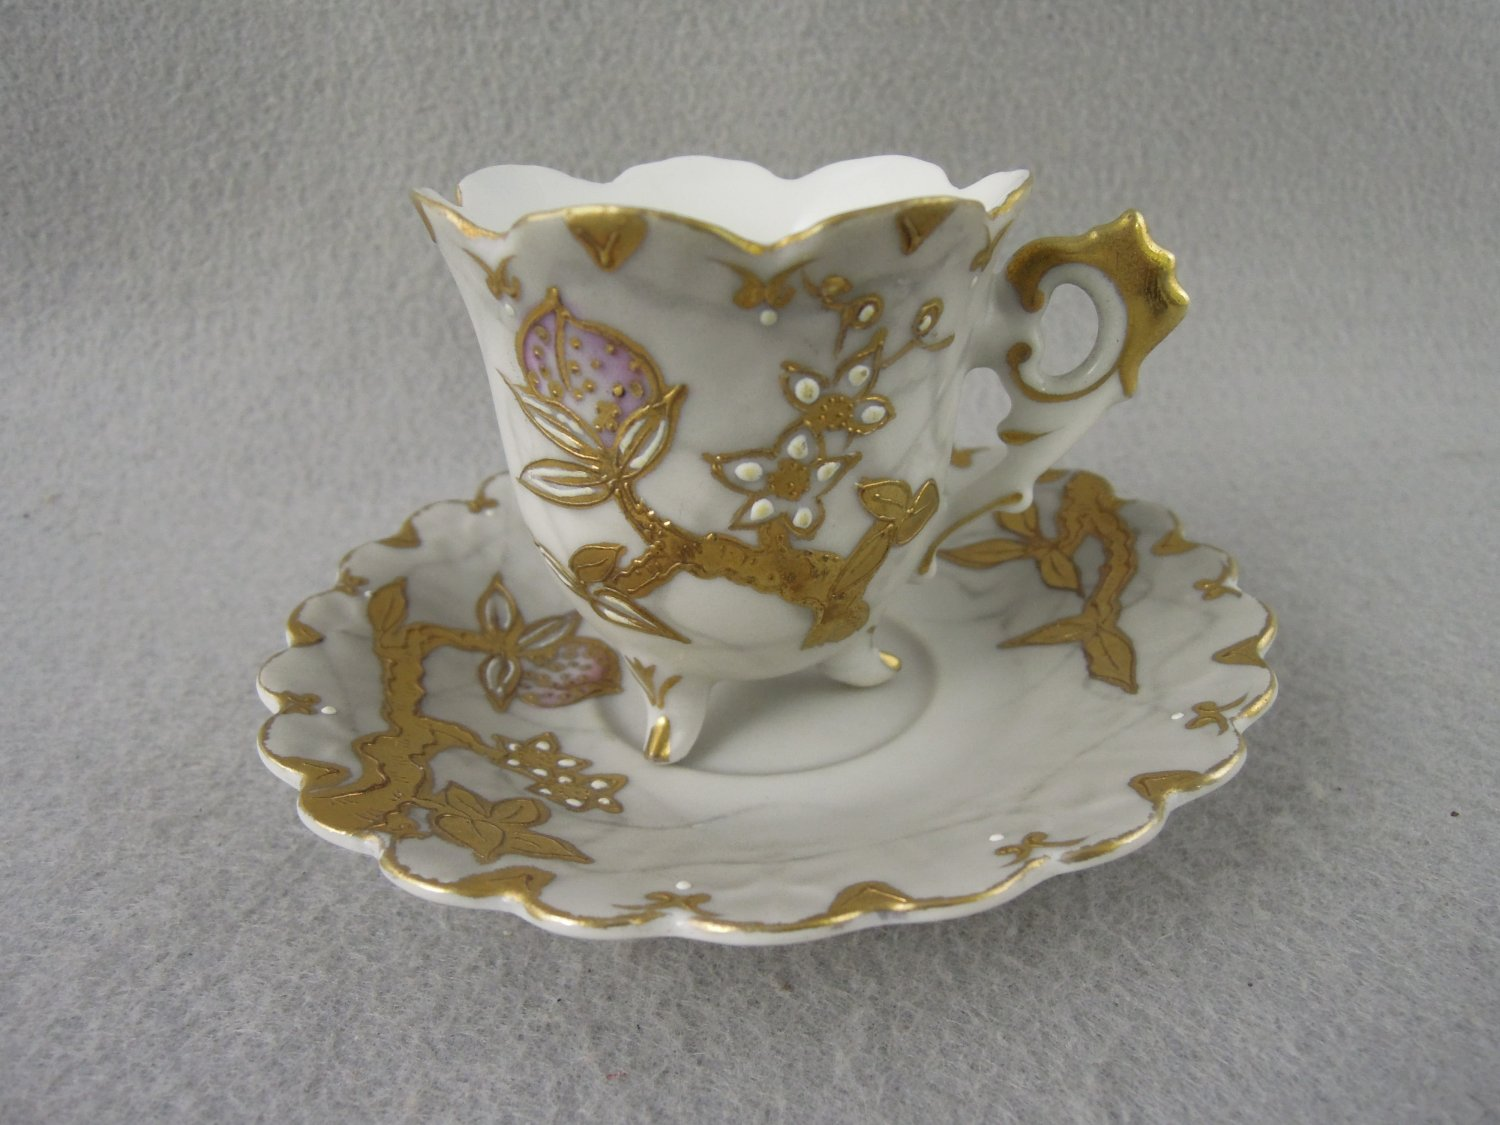 Vintage Shofu hand painted Tea cup and saucer gold trim